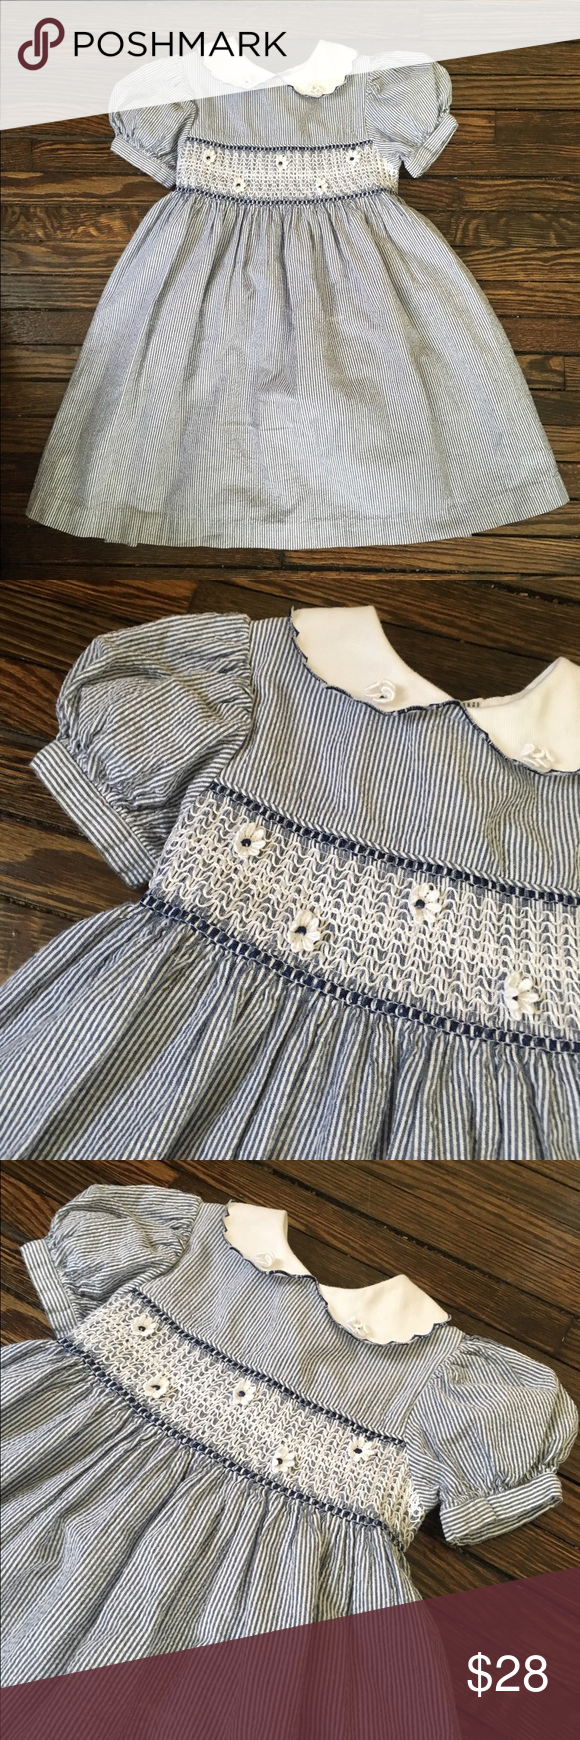 Vintage B.t. Kids Navy White Smocked Girl Dress 2T Vintage girl's dress with sash tie, buttons in back, and smock along the neckline. The dress is lined and comes in a size 2 Toddler by B.t. Kids and is smoke free. Adorable with no damage or wear and tear. The cute dainty flowers need ironing but are all intact. Lovely vintage piece for your babe. B.t. Kids Dresses